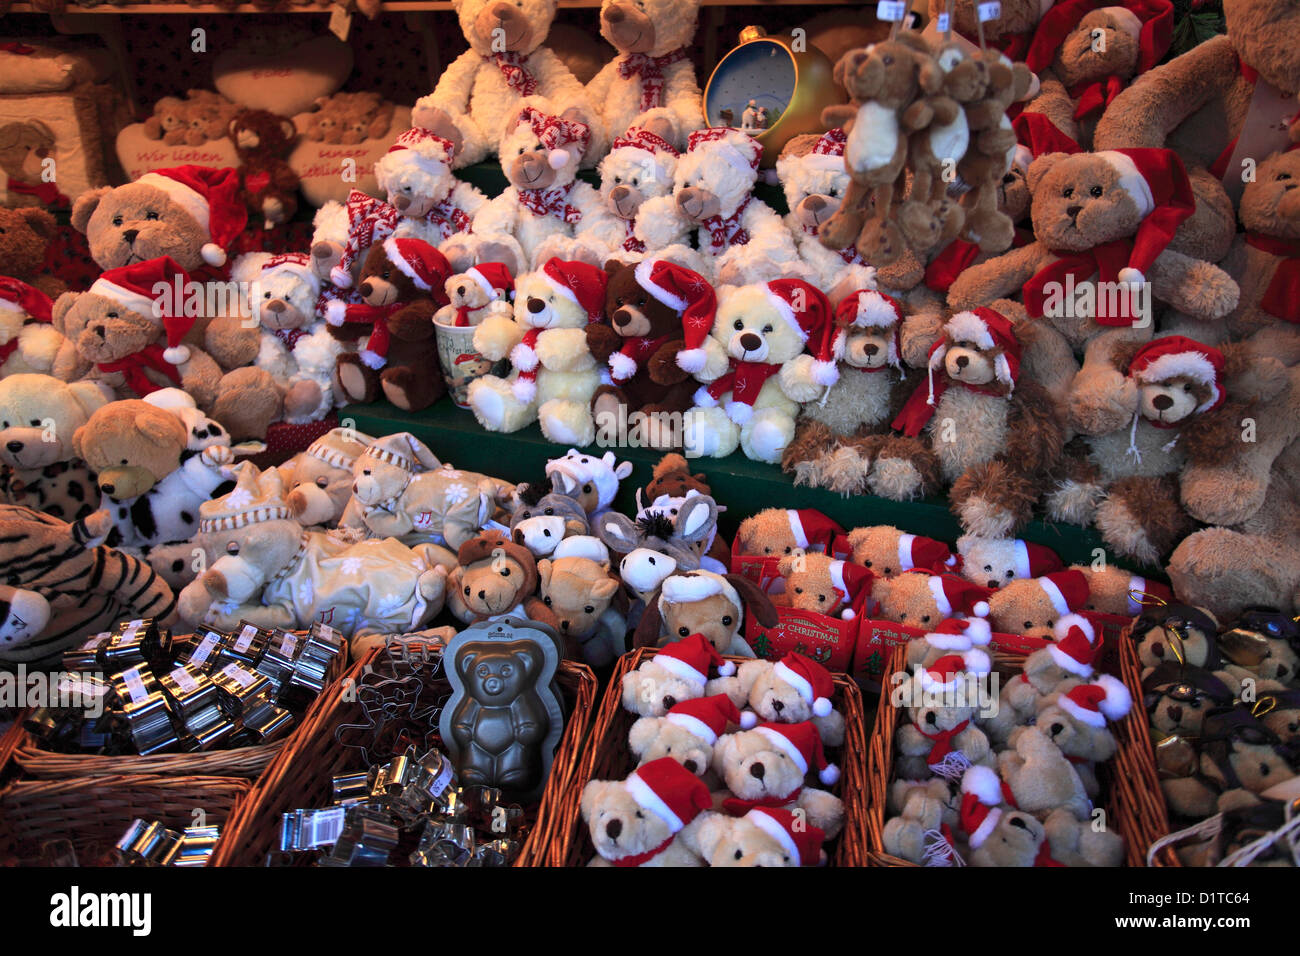 Goods and stalls at the Christmas markets in Cologne City, North Rhine-Westphalia, Germany, Europe - Stock Image